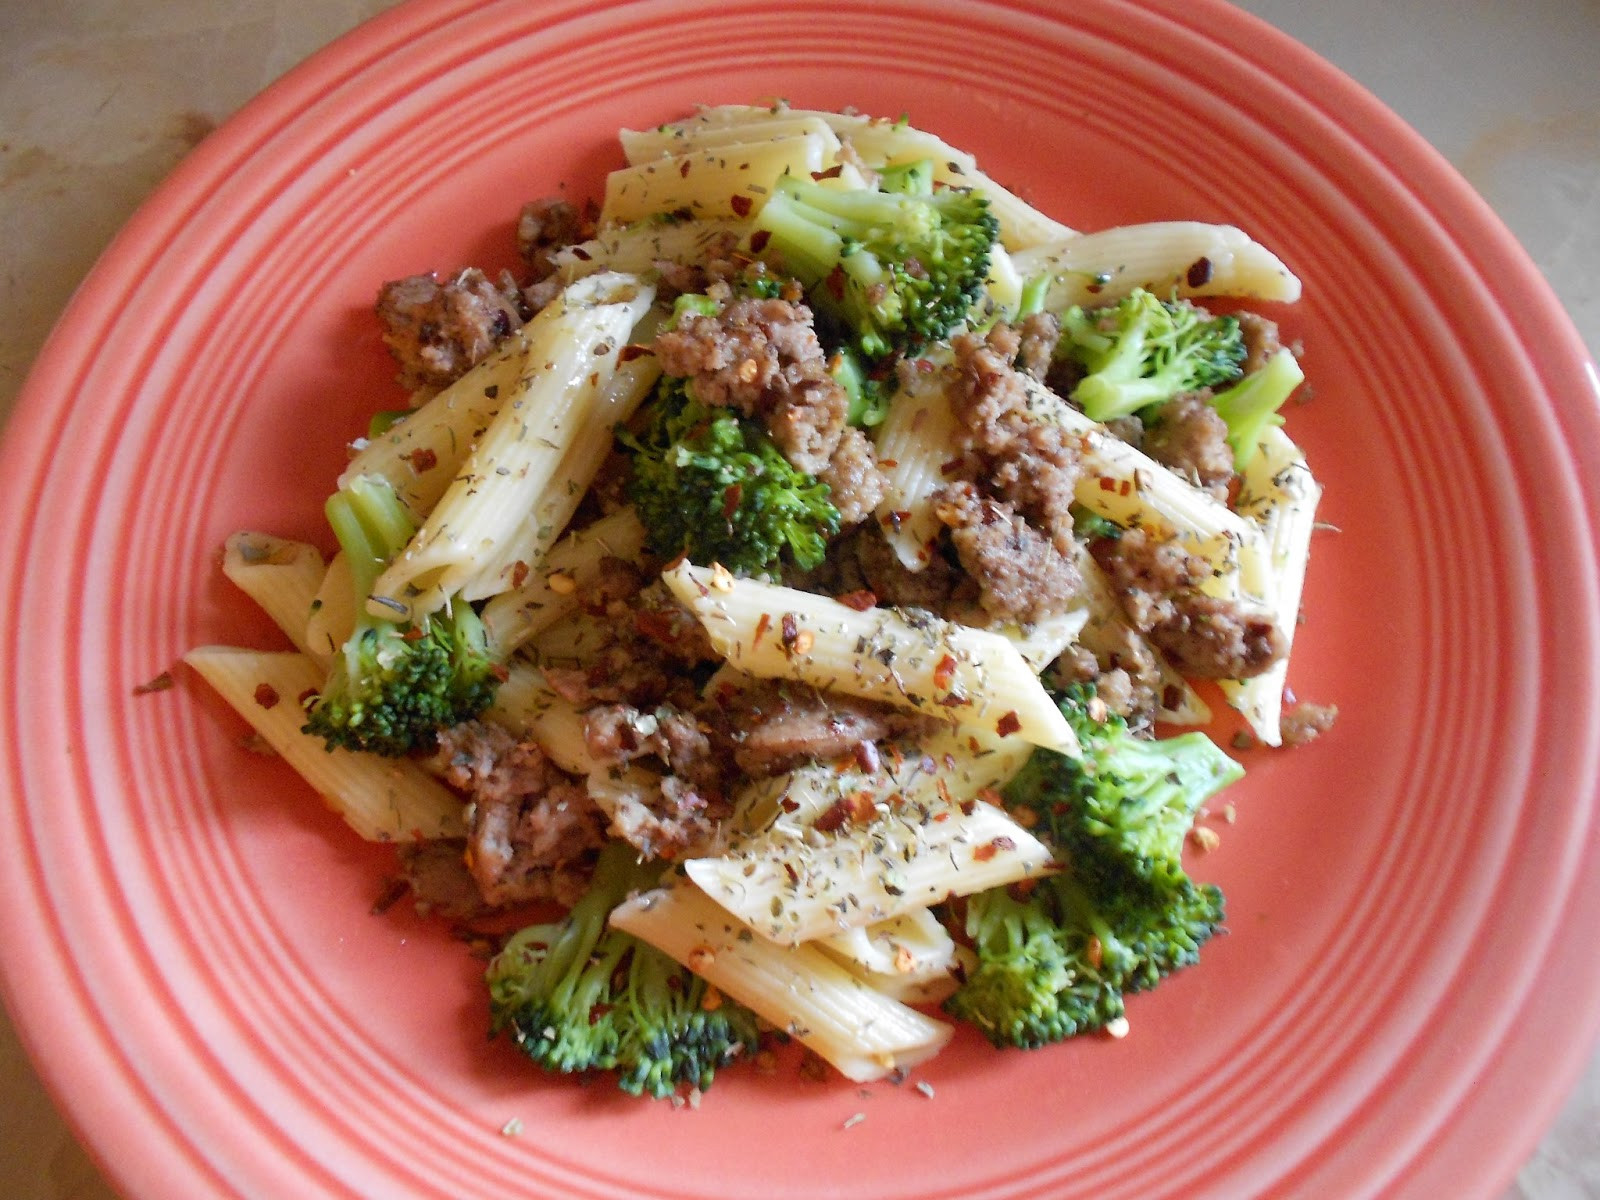 Healthy Dinner Recipes With Ground Turkey  A Healthy Dinner Pasta With Ground Turkey and Broccoli